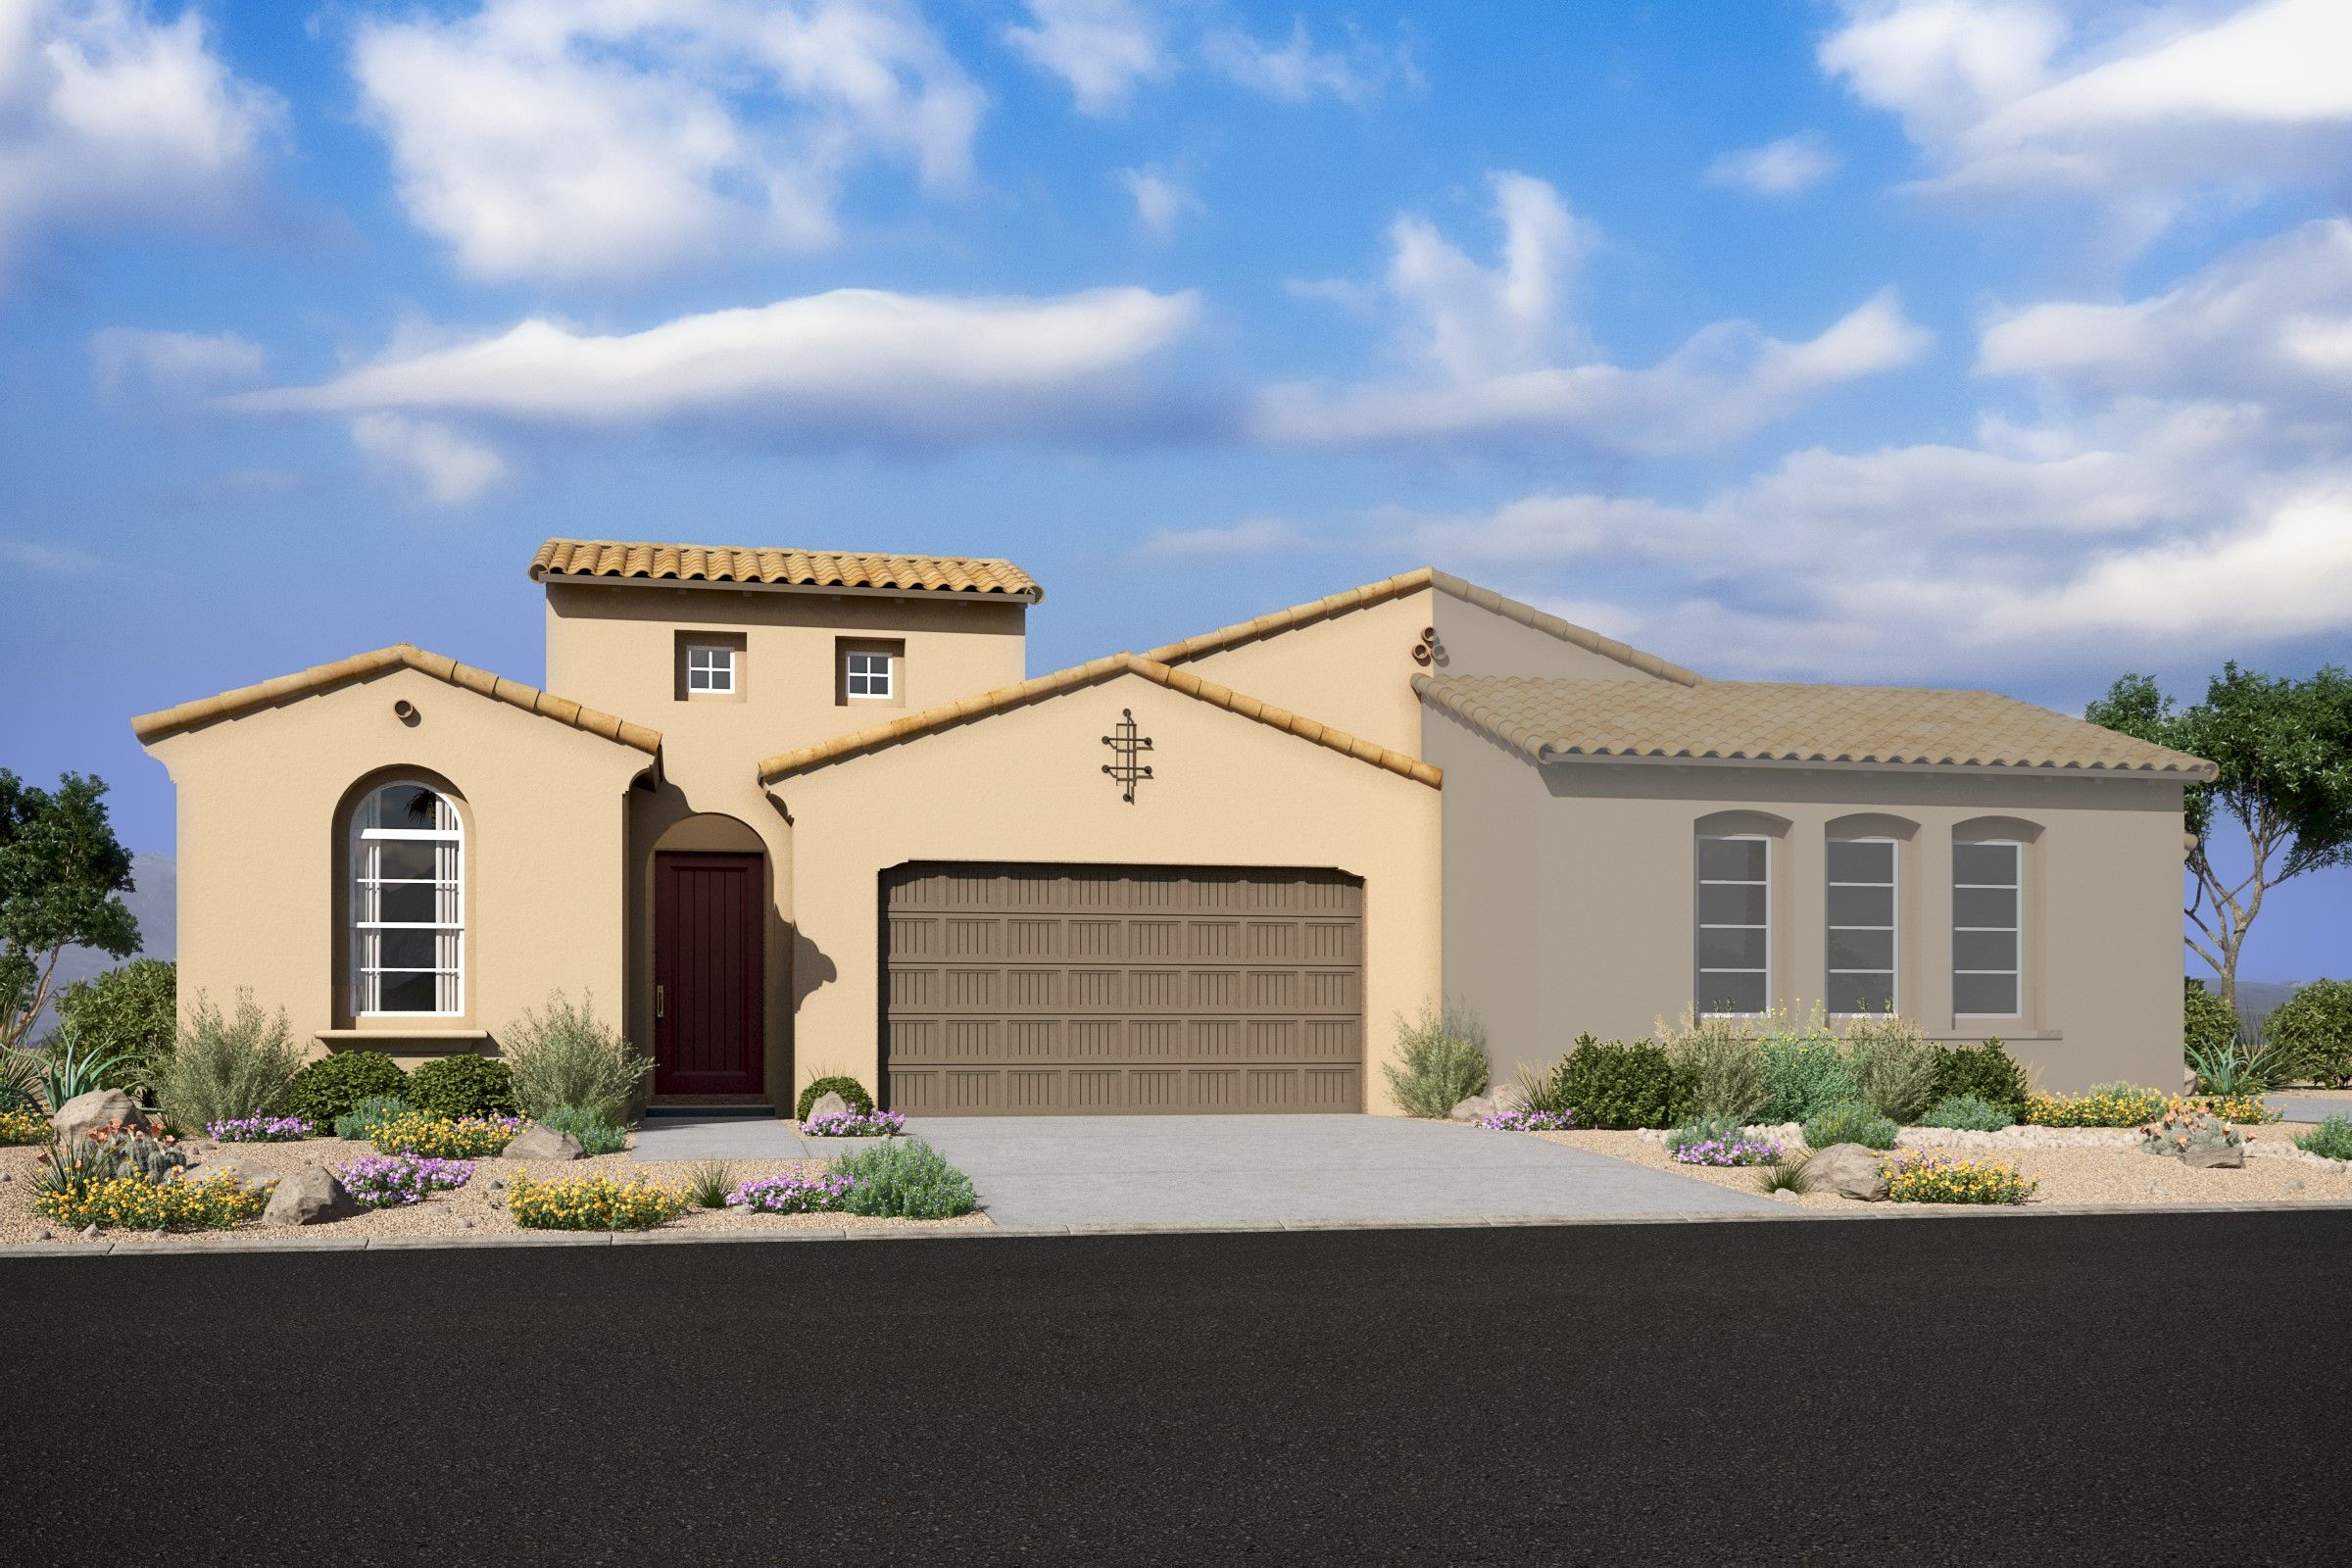 Multi Family for Sale at Summit At Silverstone - Capstone 74th St And Pinnacle Peak Rd Scottsdale, Arizona 85255 United States